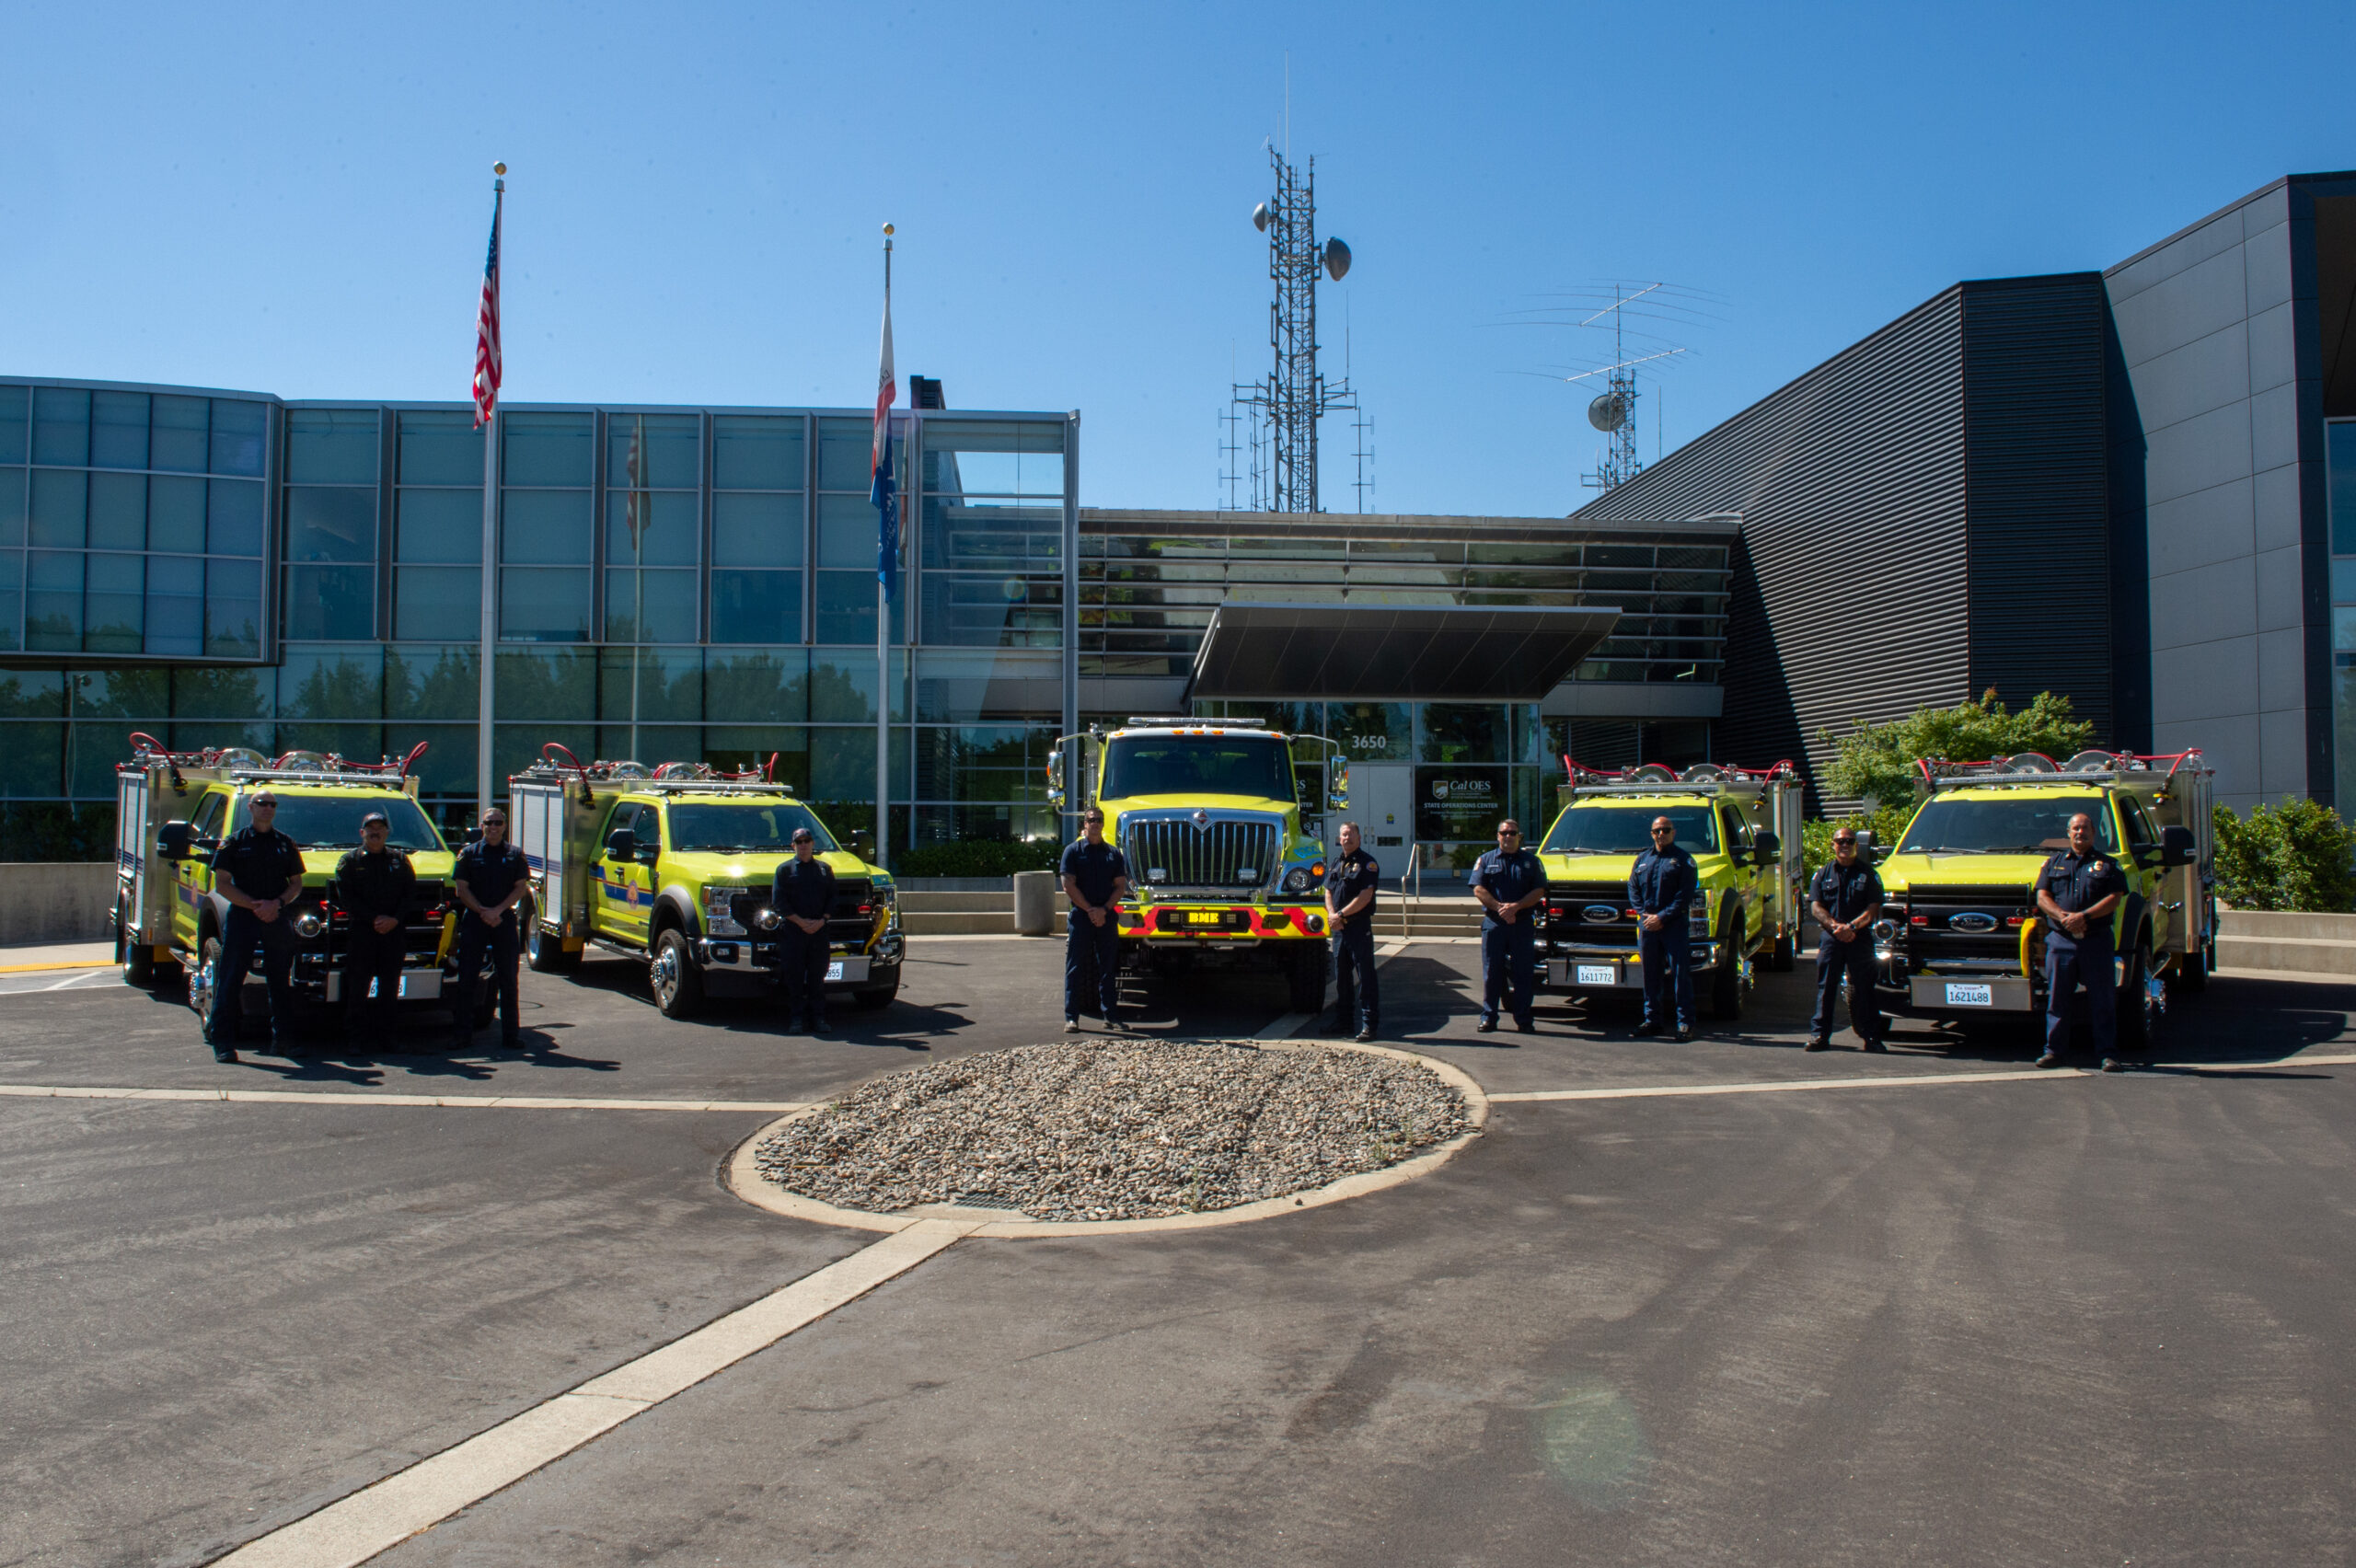 Cal OES Deploys Ten New Fire Engines to Protect Communities and Save Lives, More on the Way